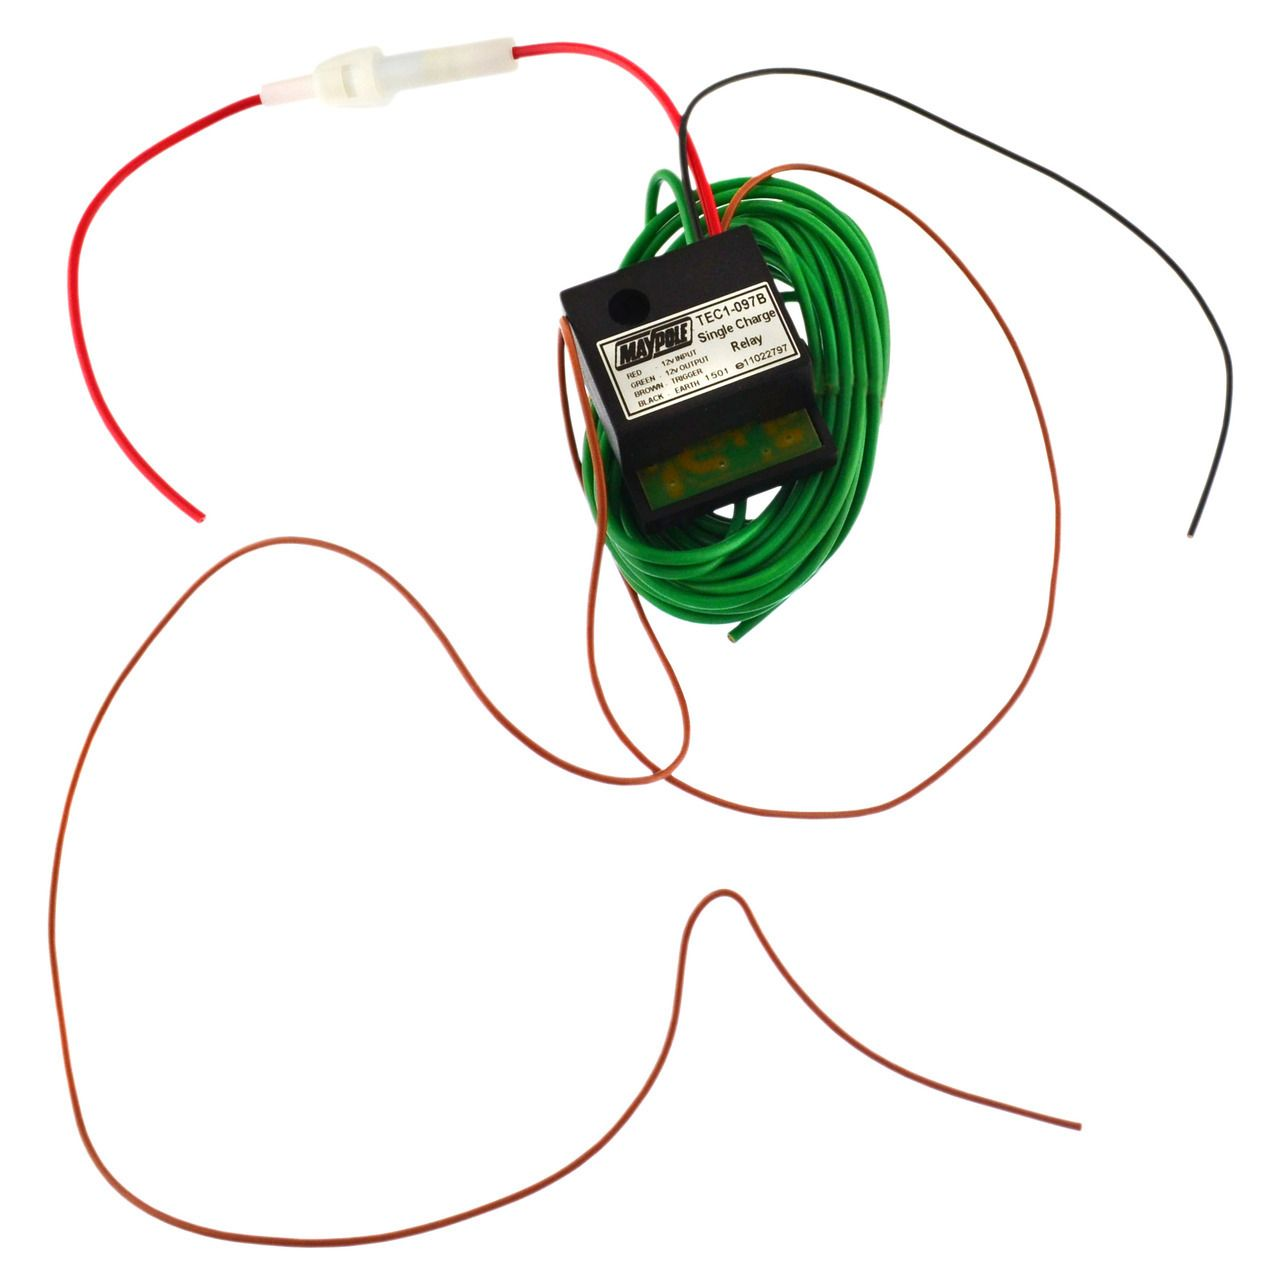 Caravan battery charging relay wiring kit auxiliary battery split caravan battery charging relay wiring kit auxiliary battery split charge tr228 ab tools online asfbconference2016 Image collections